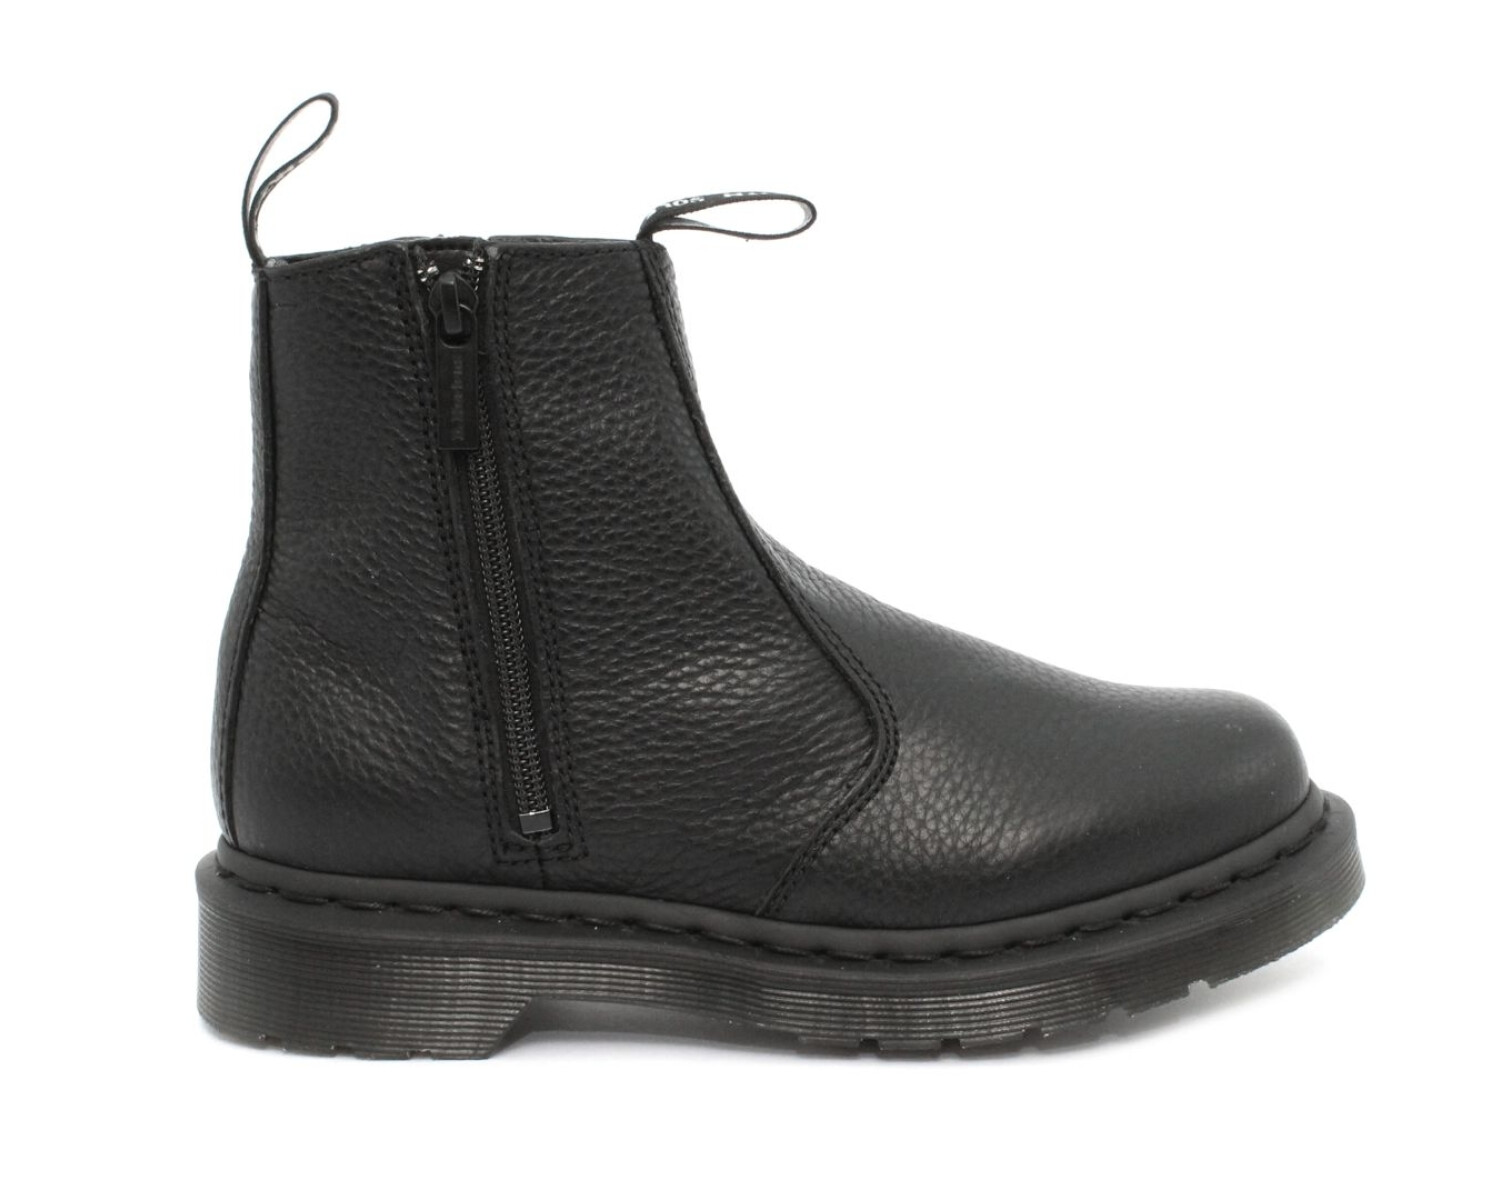 Anfibio DR MARTENS 2976 W/ZIPS BLACK AUNT SALLY 22133001